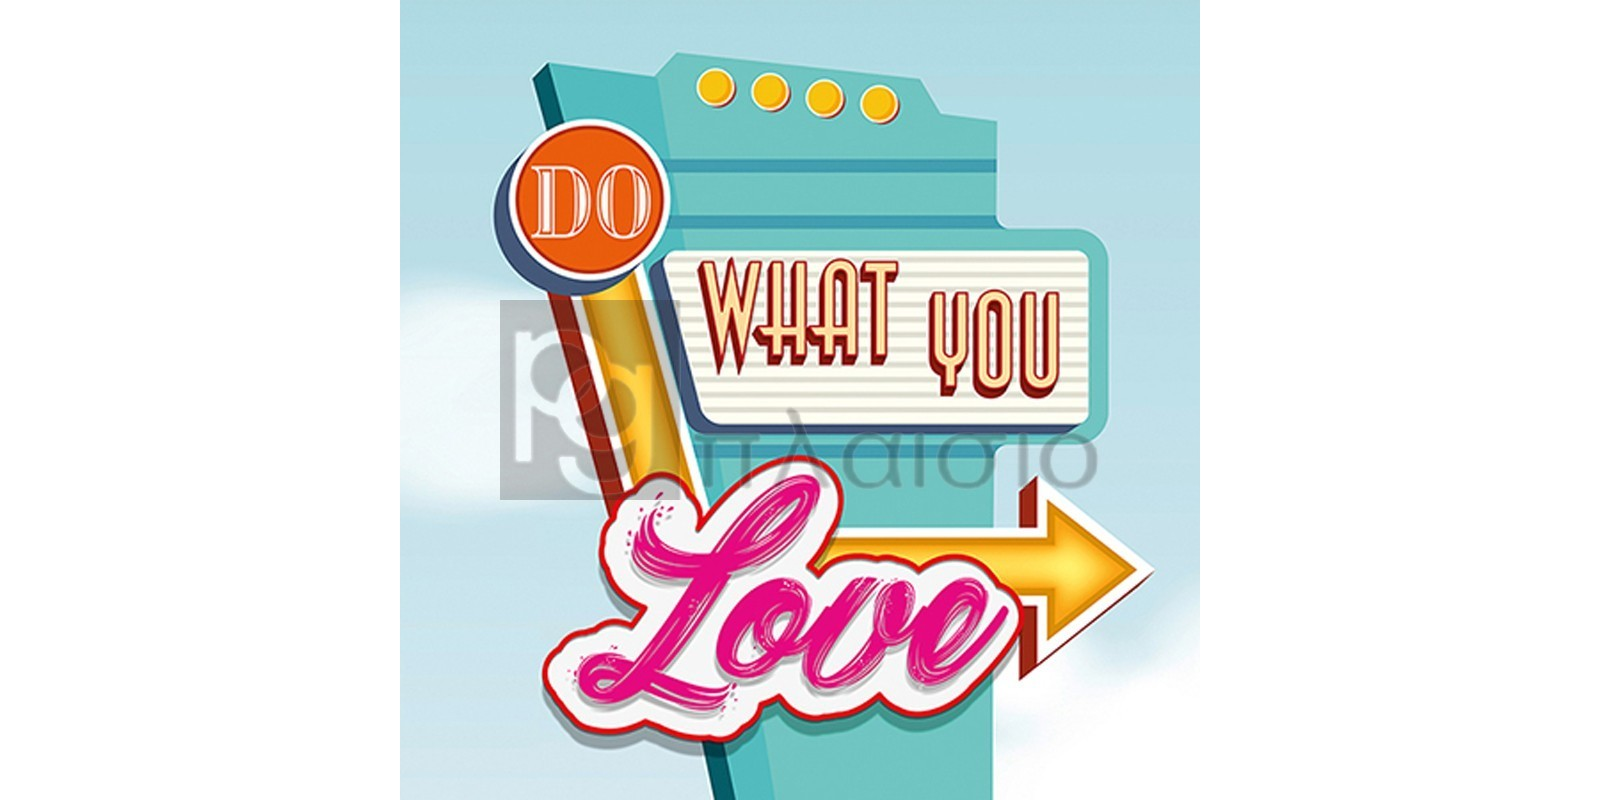 Steven Hill - Do what you love